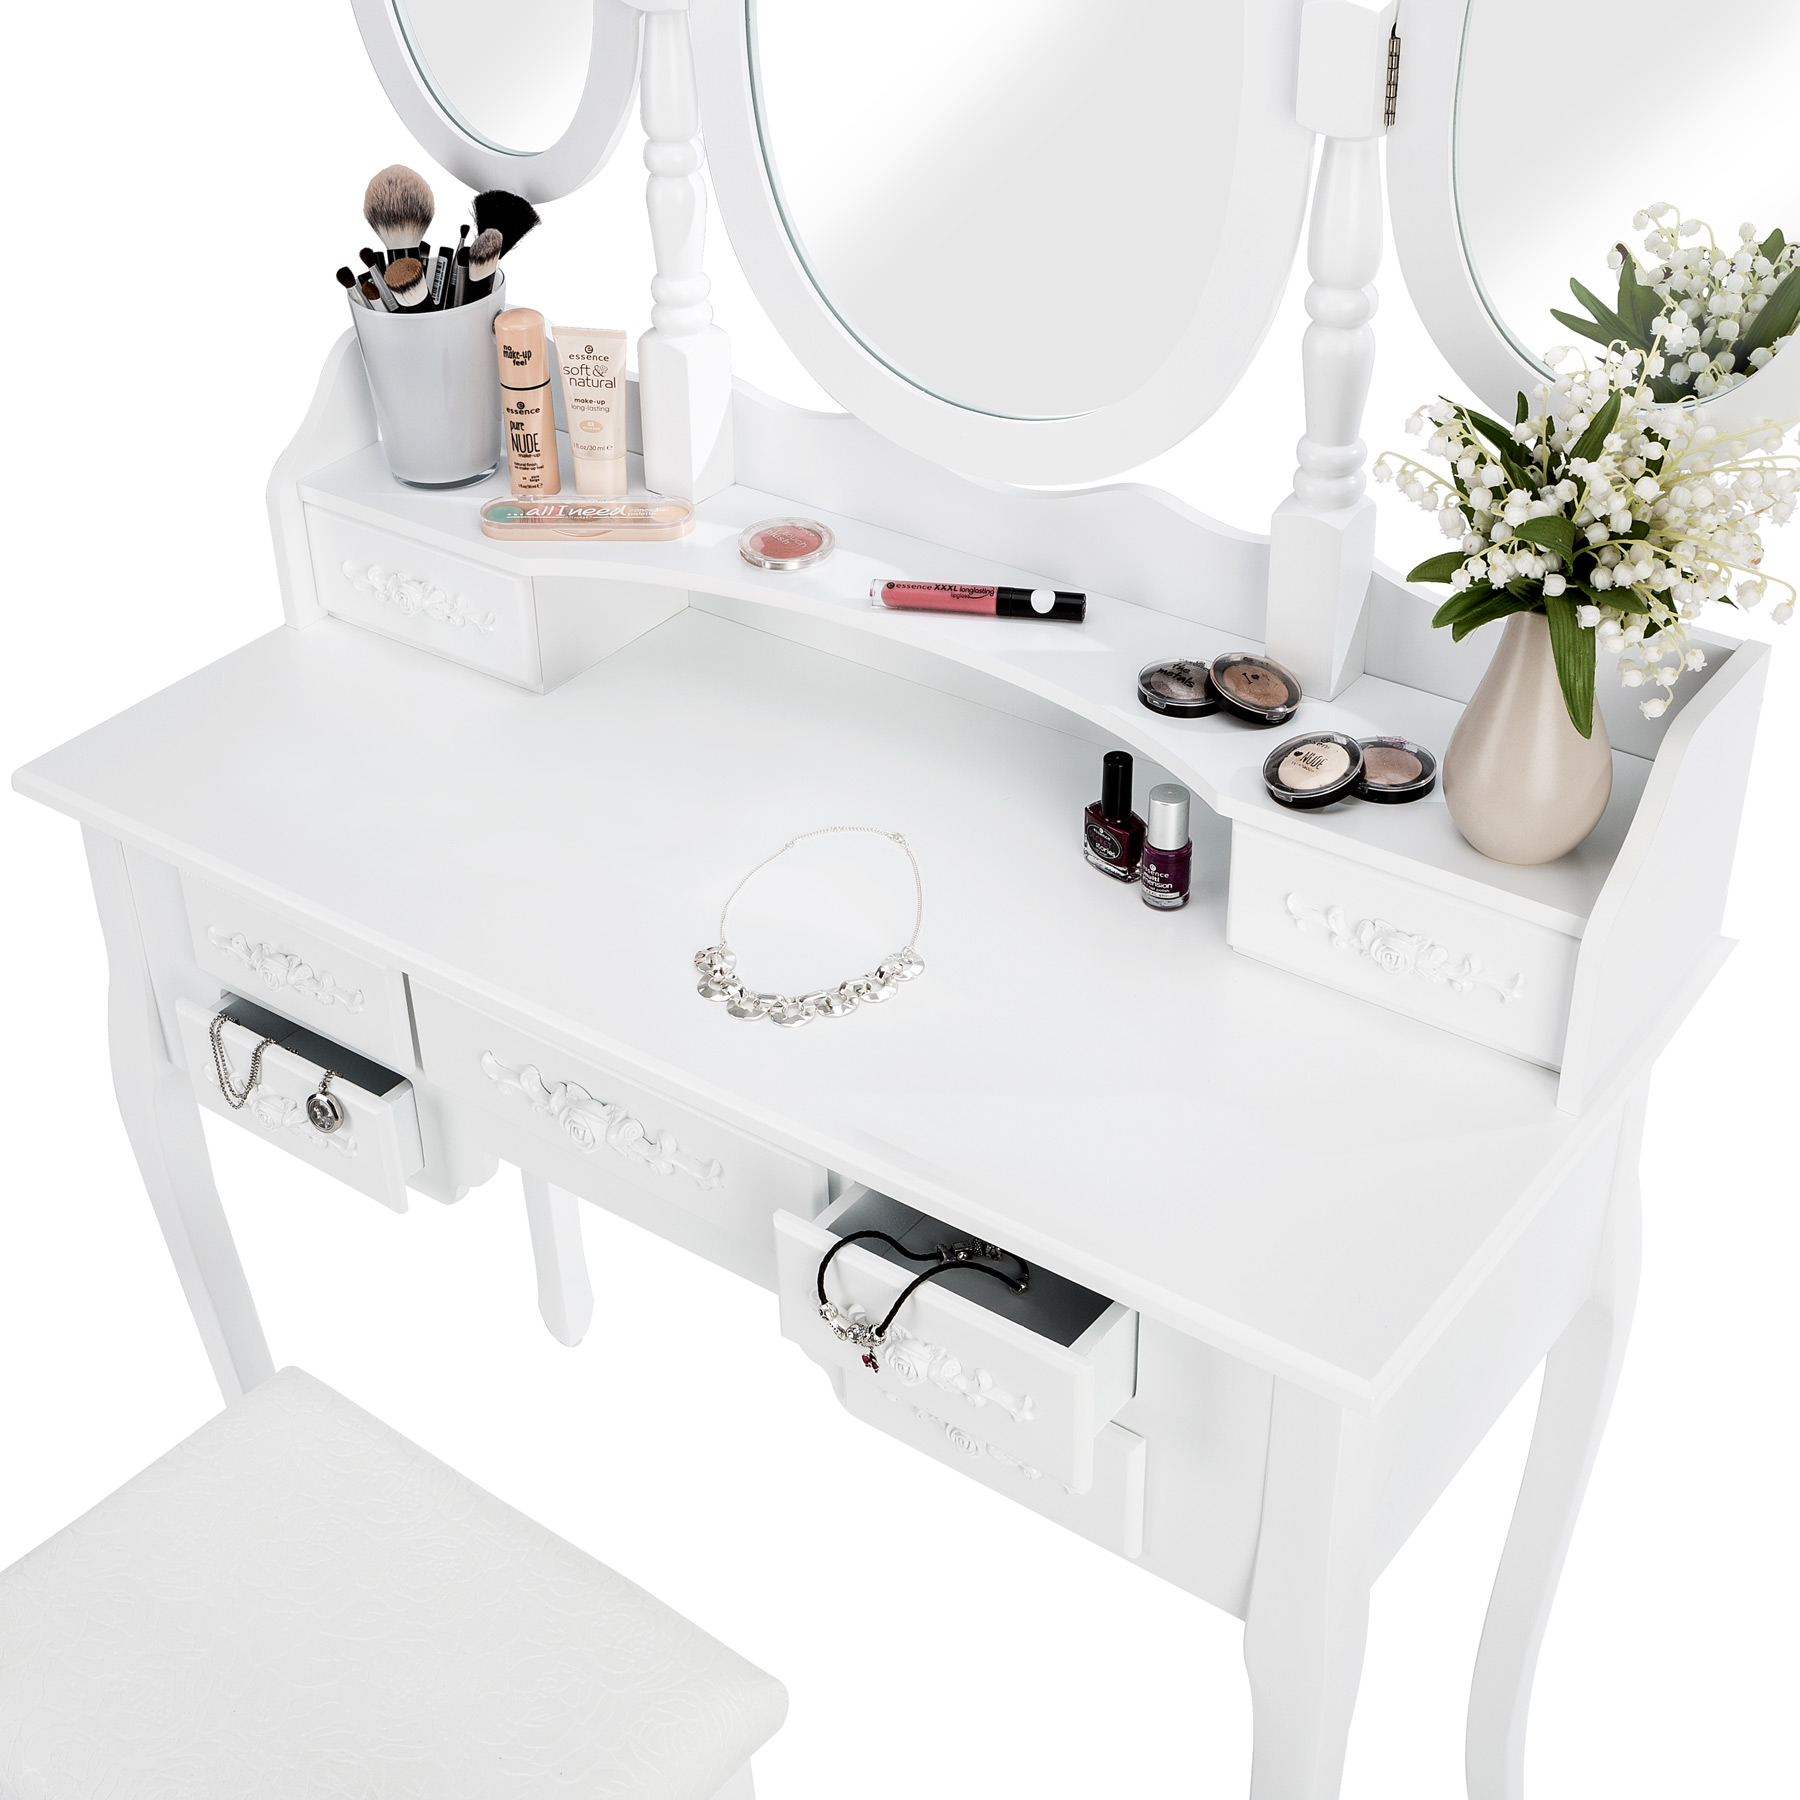 coiffeuse meuble table de maquillage tabouret commode avec 3 miroirs blanc ebay. Black Bedroom Furniture Sets. Home Design Ideas